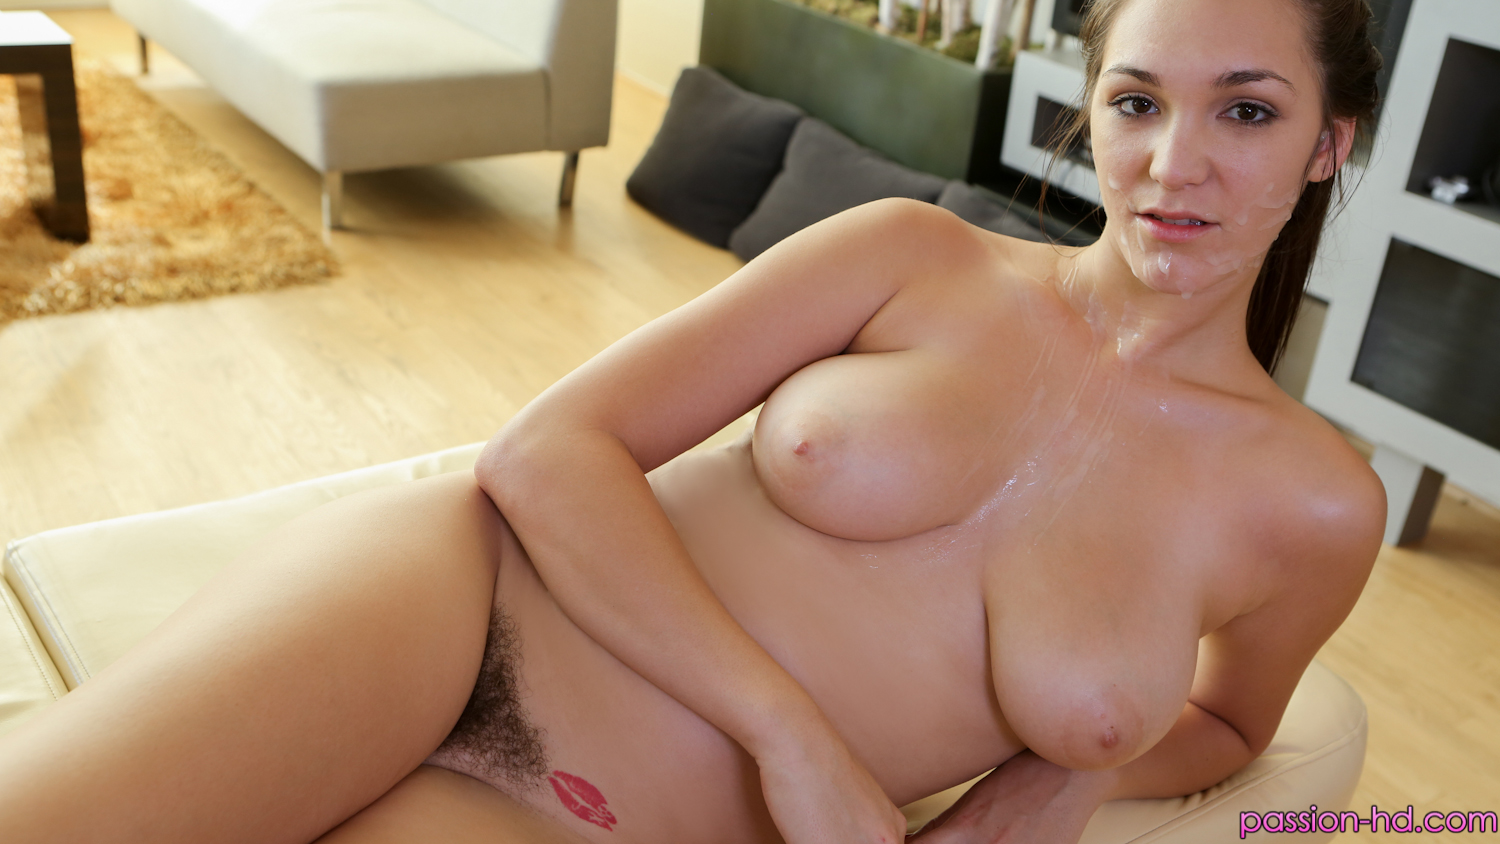 Busty euro beauty gets the snot fucked out of her - 3 3